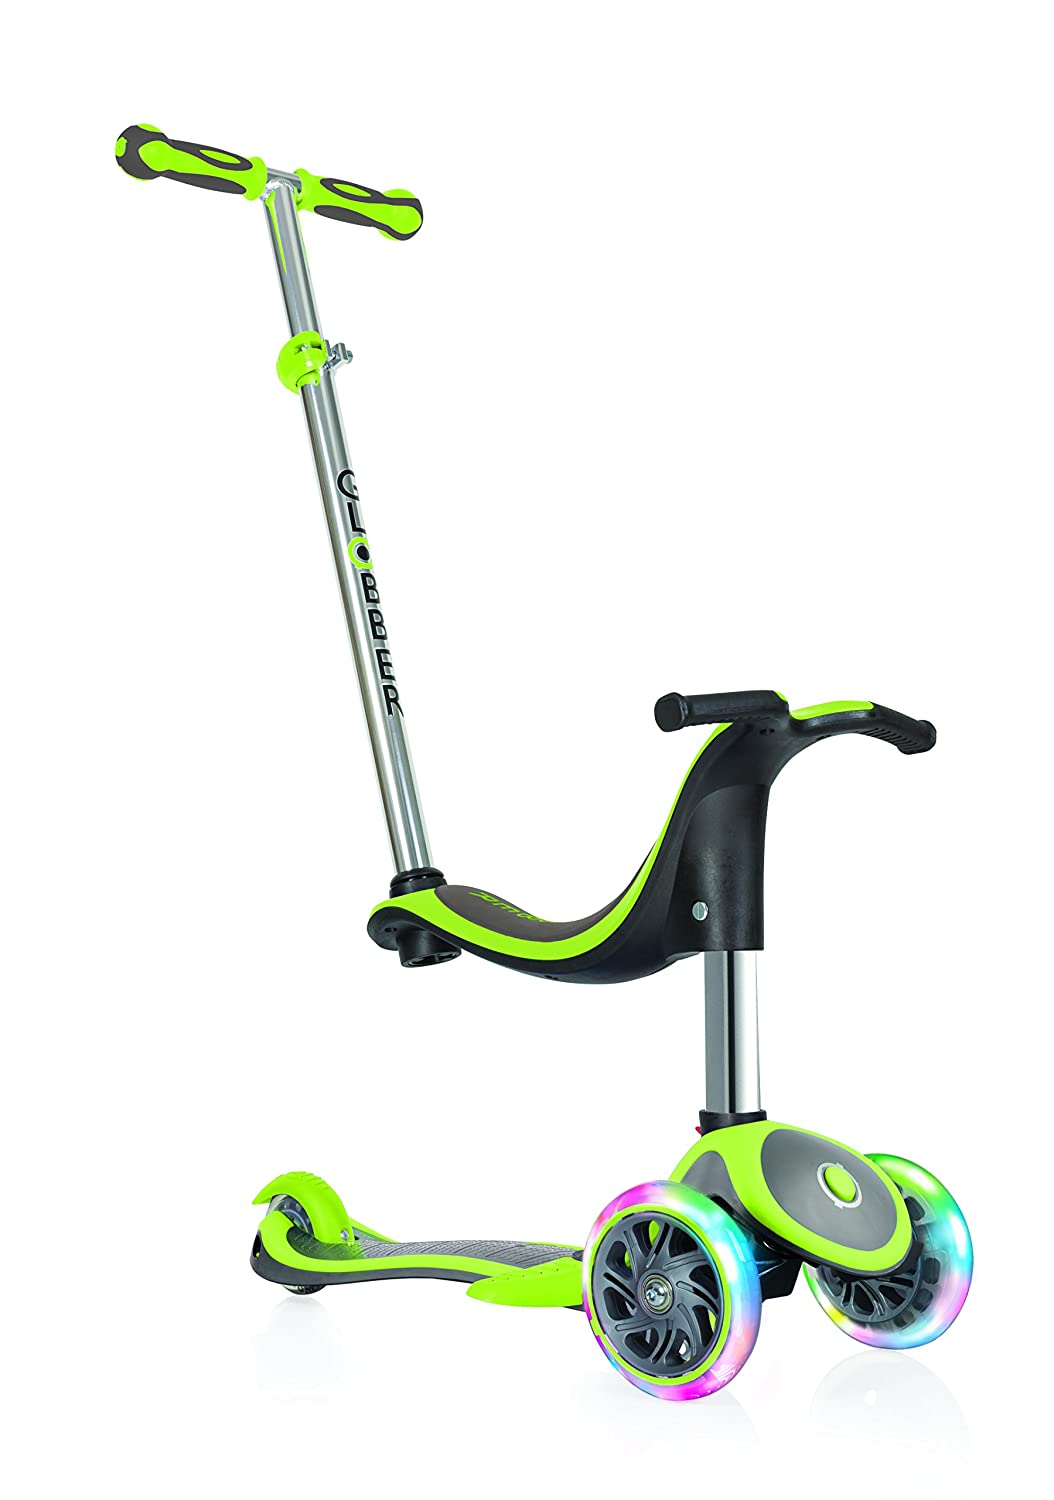 Globber Kinder EVO 4 in1 Plus mit Licht bis Rädern Scooter, Kinder, Evo 4-in-1 Plus with Light Up Wheels, lindgrün lindgrün 454-136